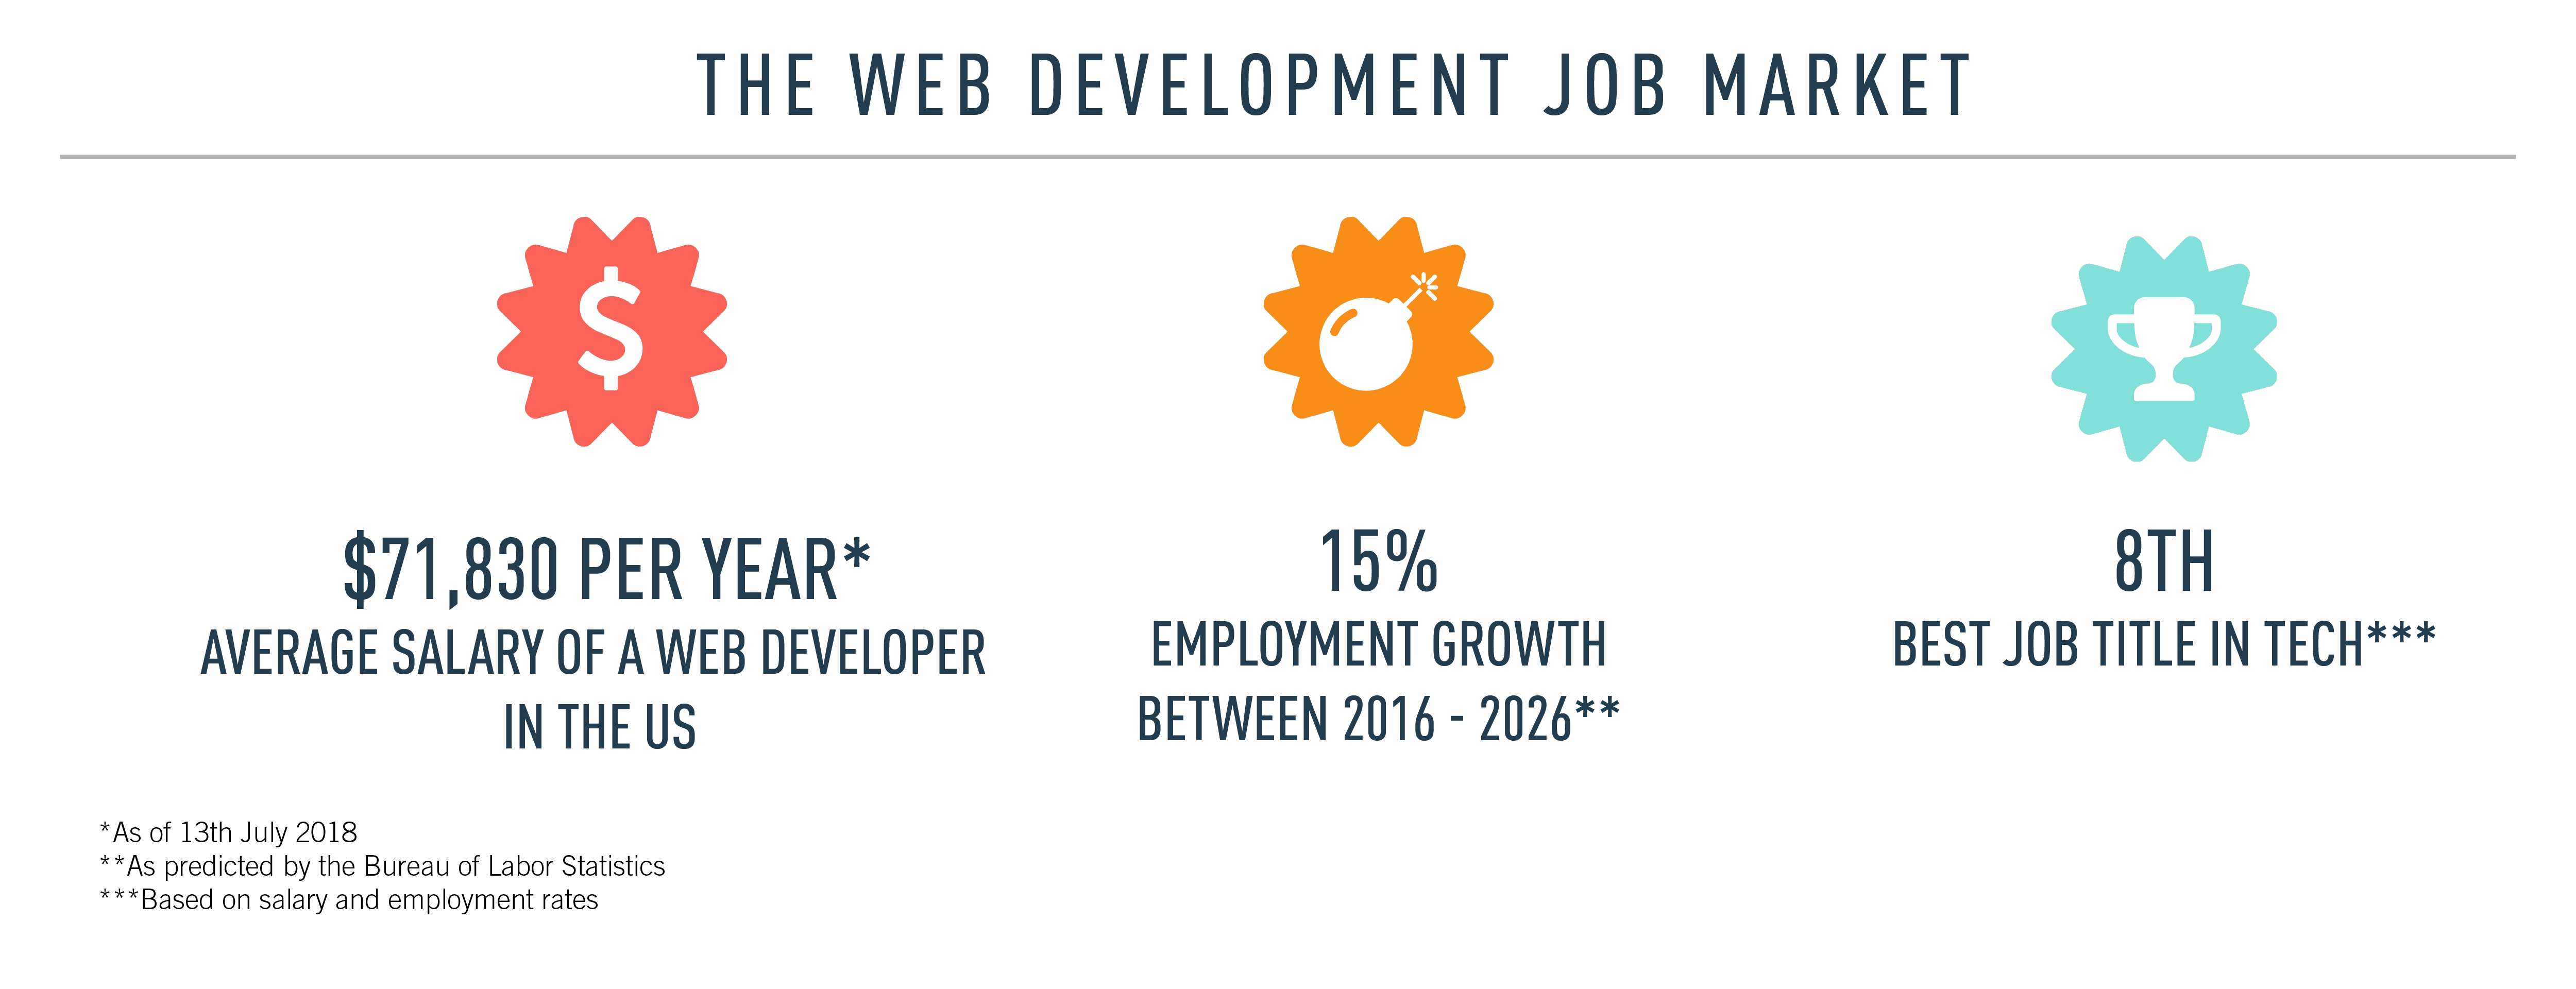 Infographic with statistics regarding the web development job market